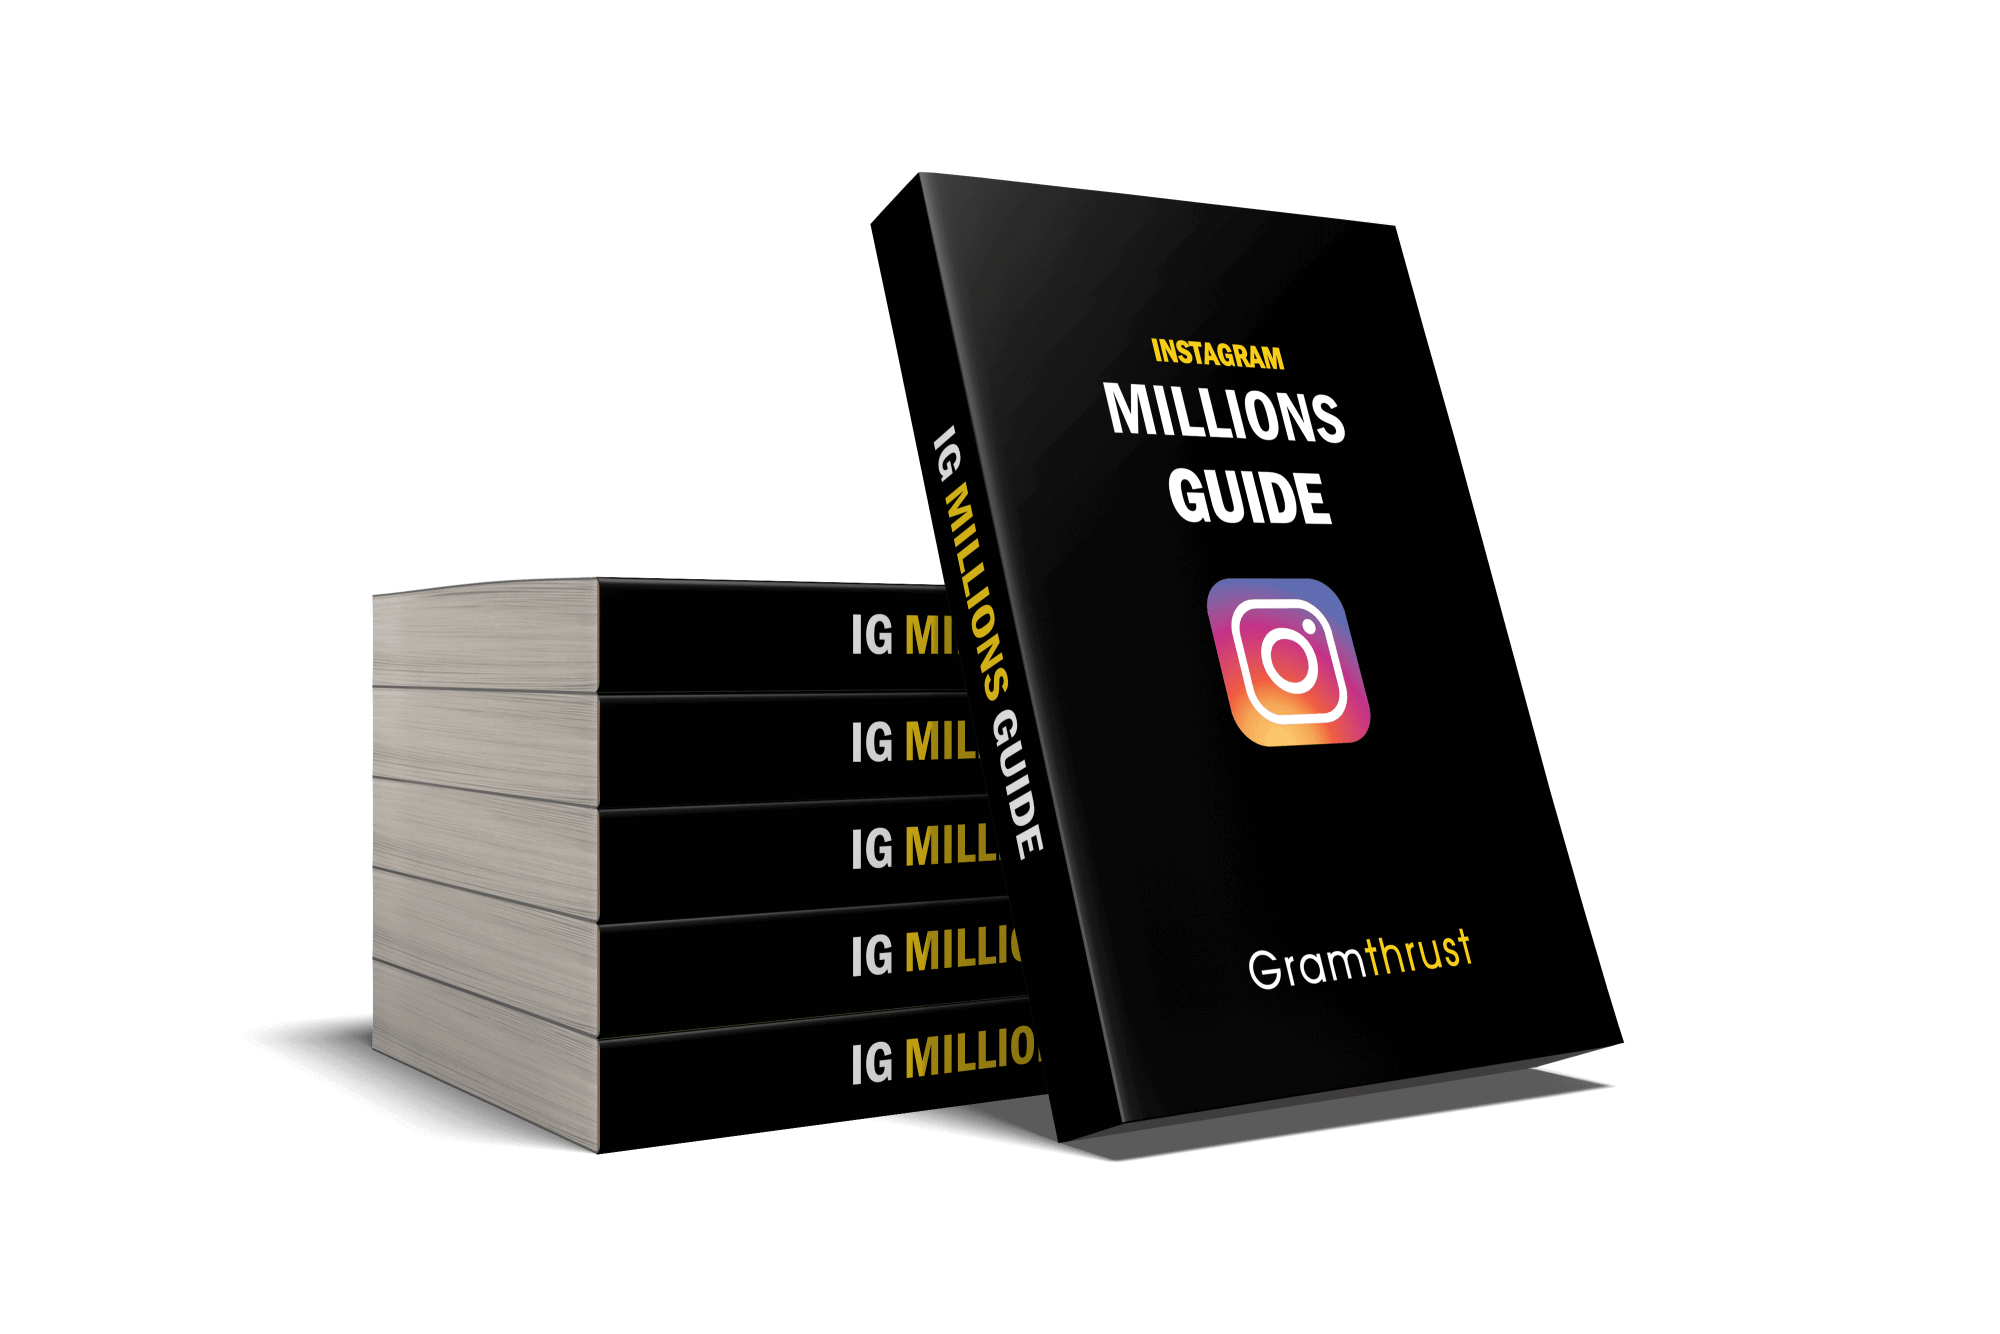 Instagram Millions Guide Review—How to Get Free100K followers in 4 Months